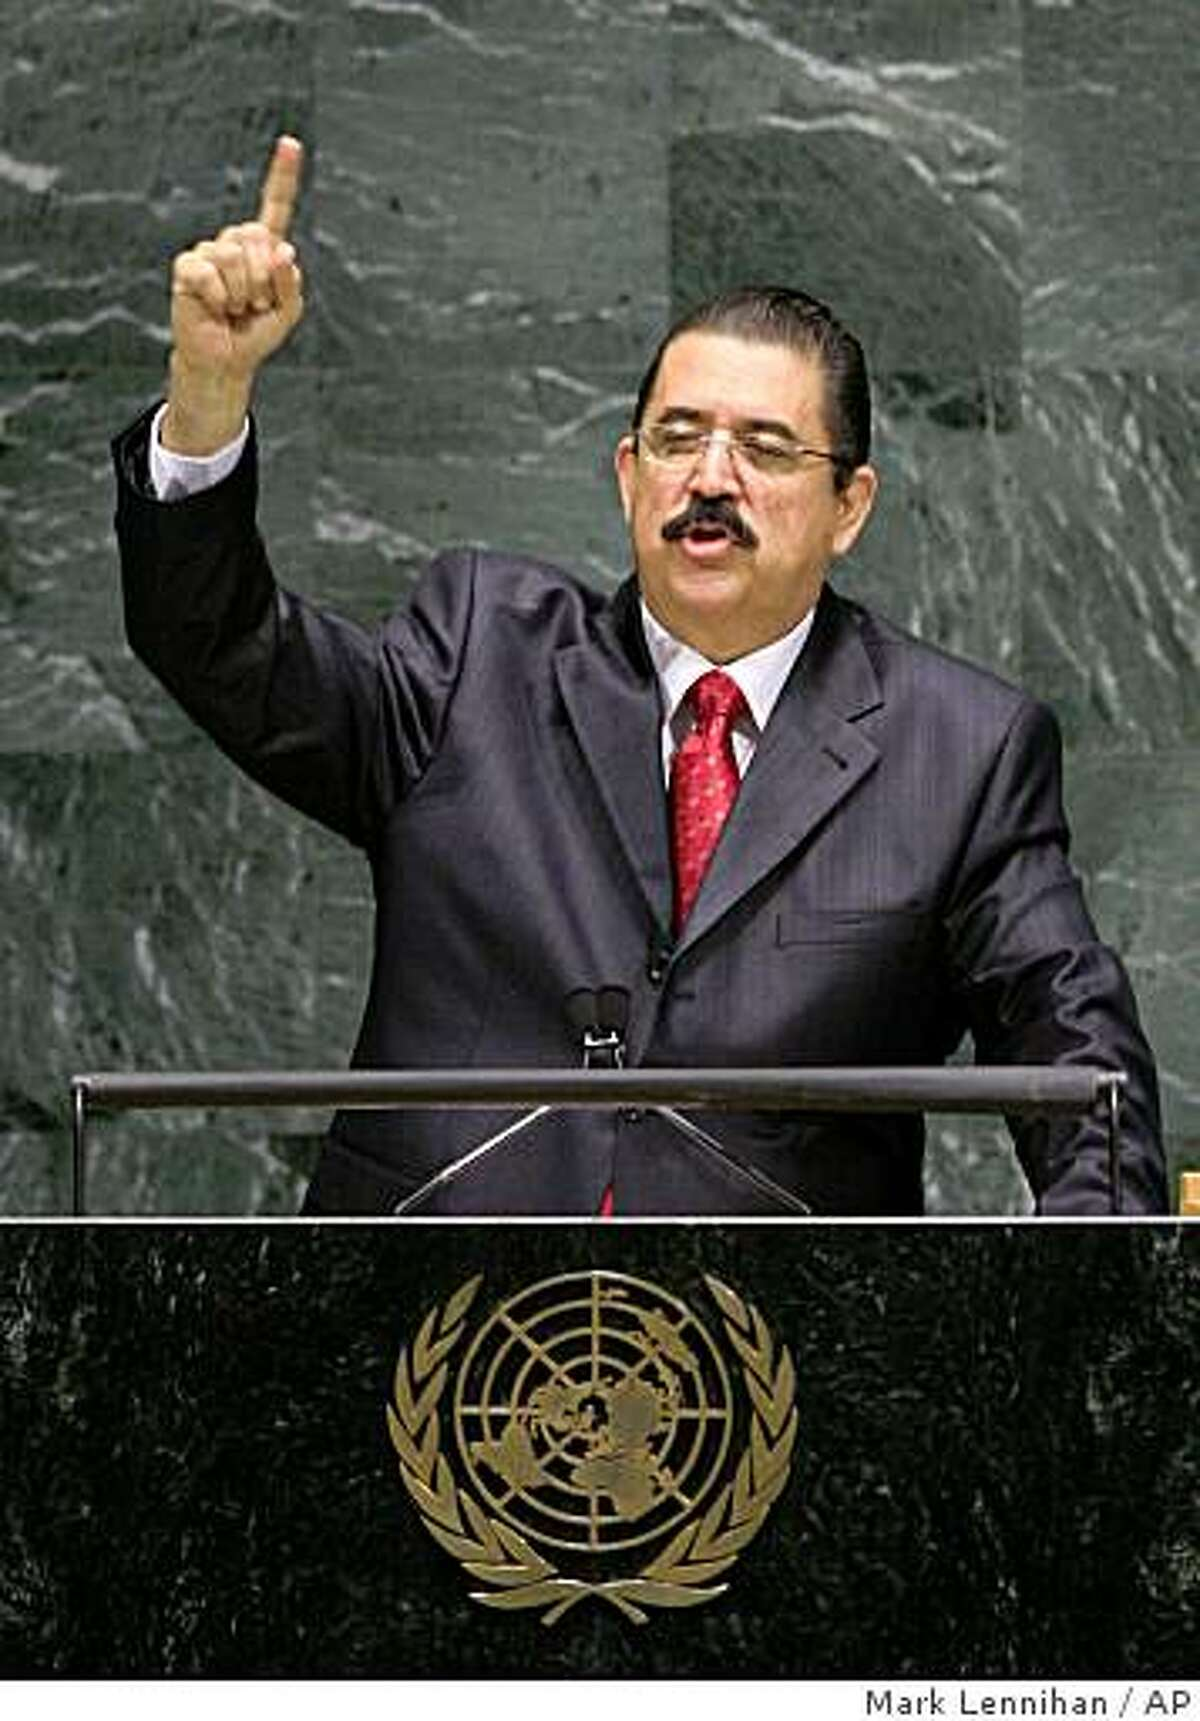 Honduran President Manuel Zelaya addresses the United Nations General Assembly Tuesday, June 30, 2009. Zelaya was ousted Sunday in a military coup. (AP Photo/Mark Lennihan)